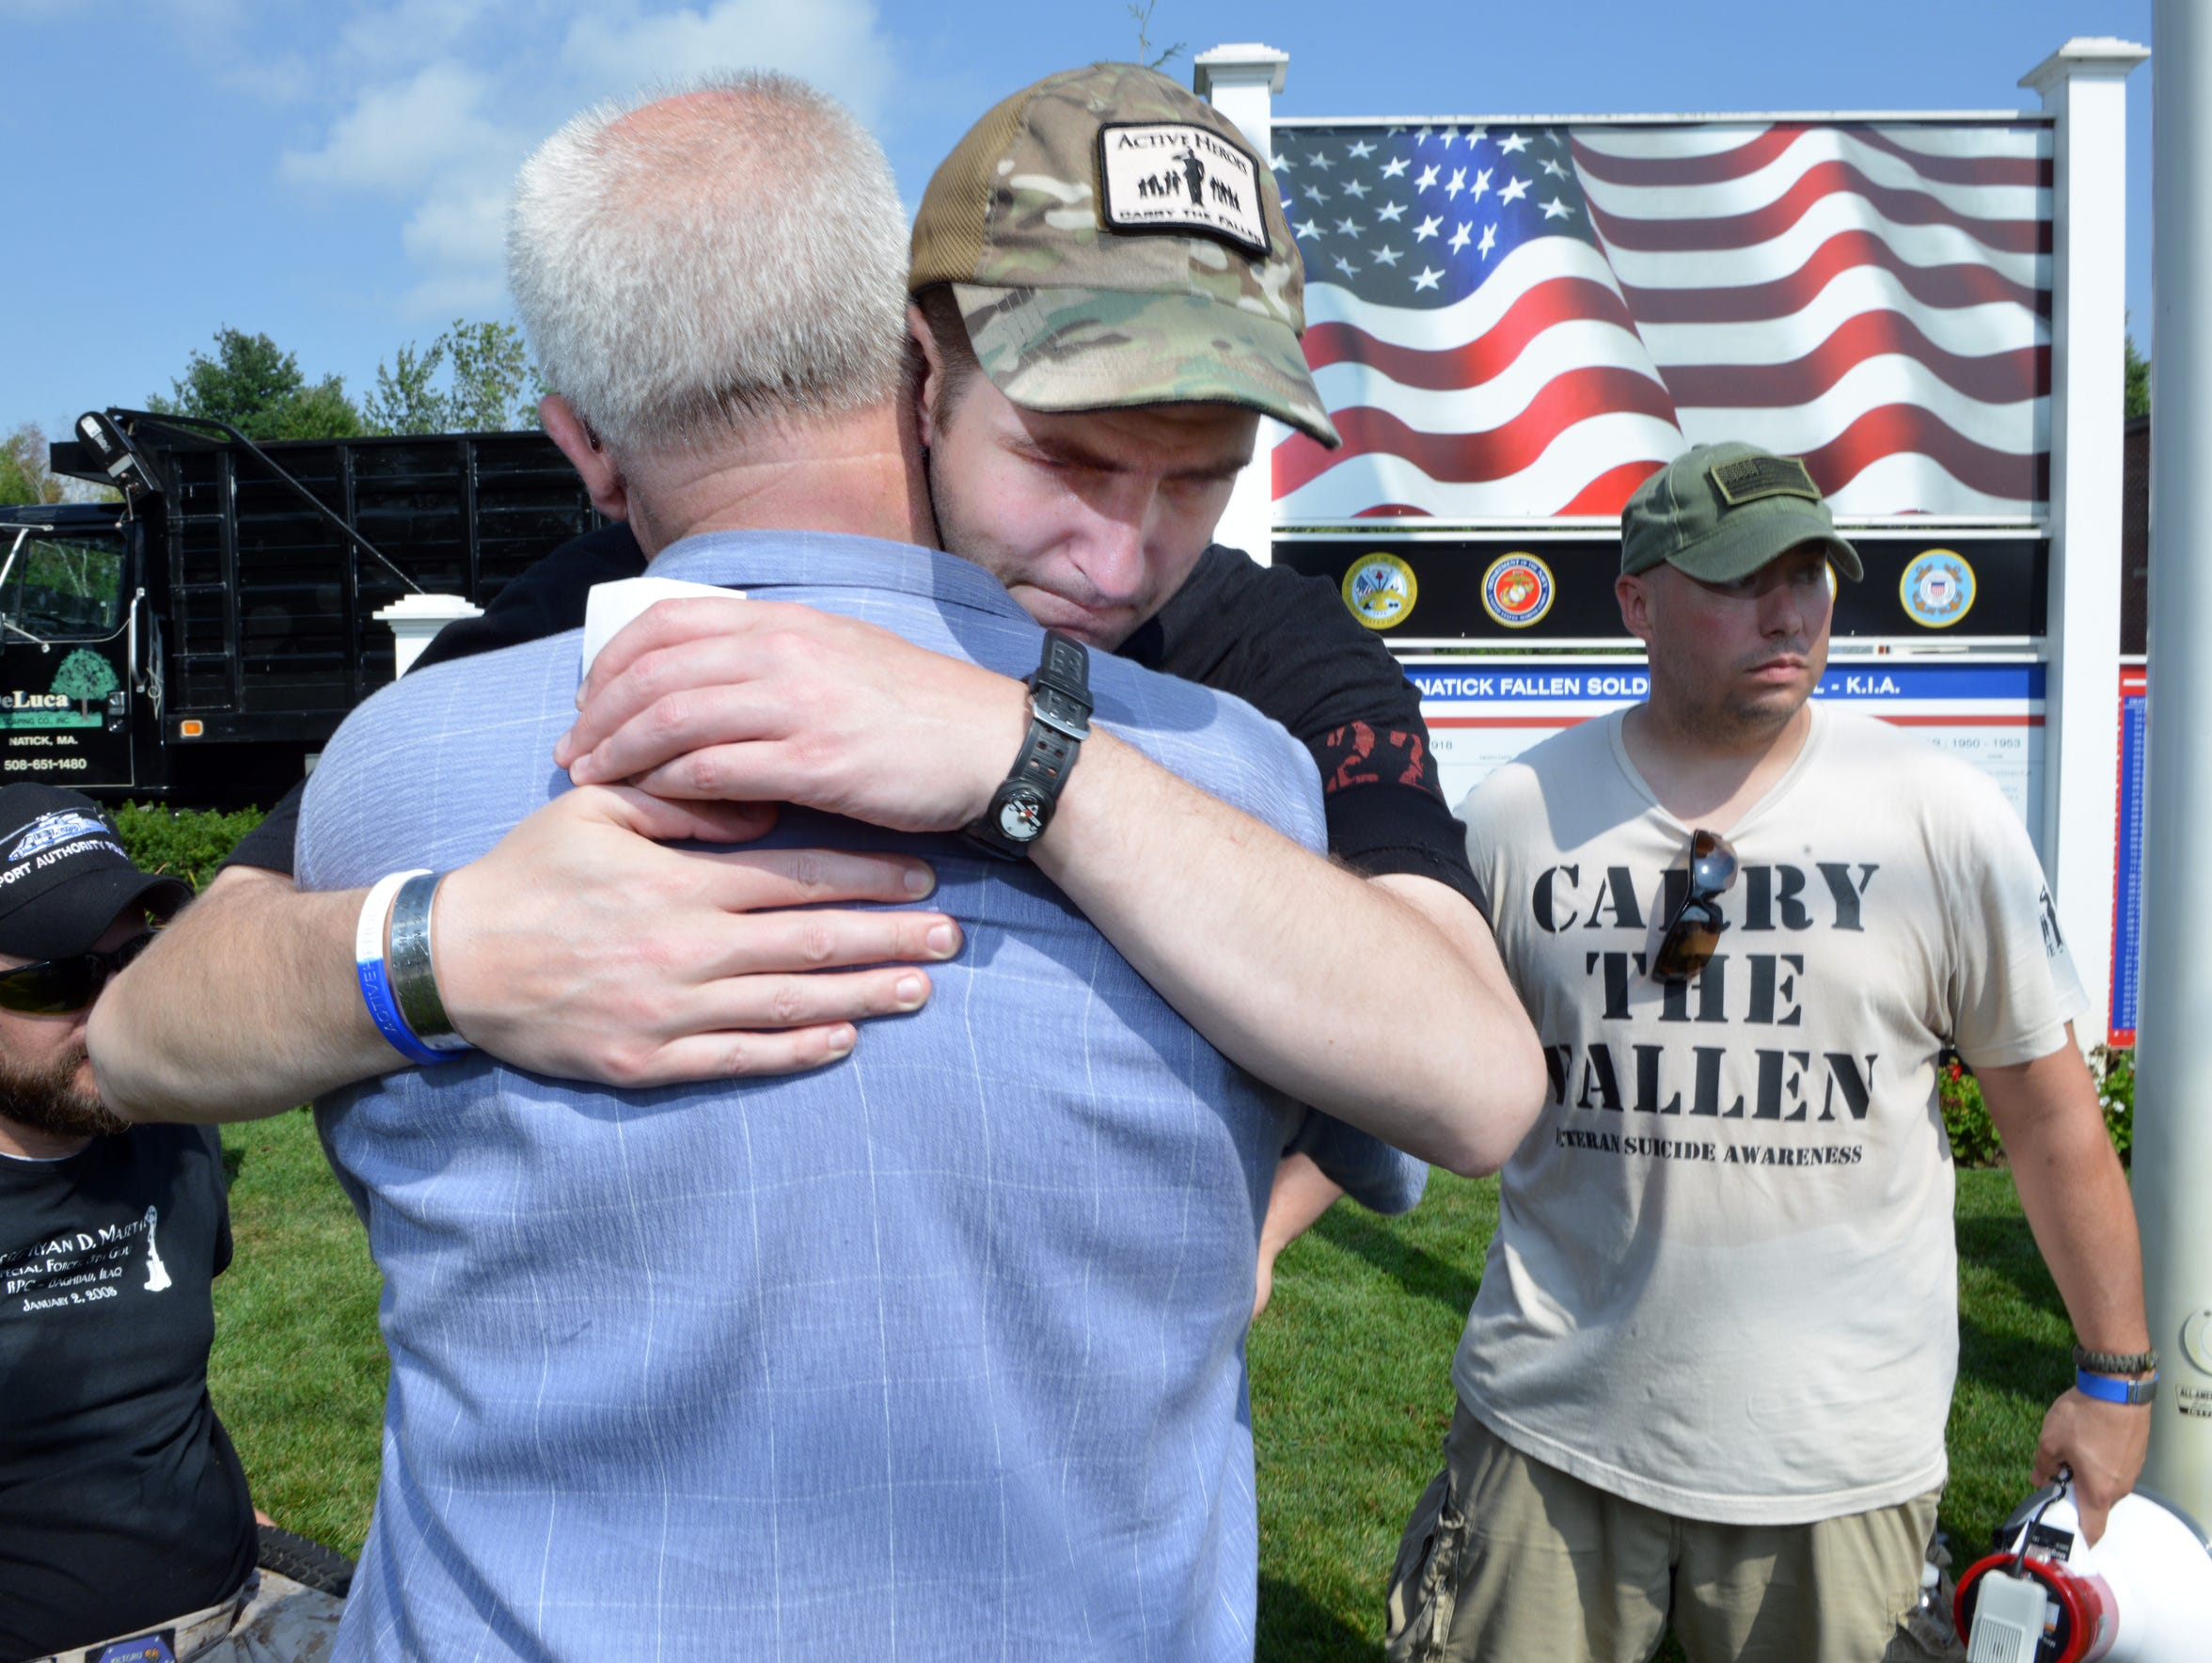 Army Capt. Justin Fitch, center, embraces Paul Carew,